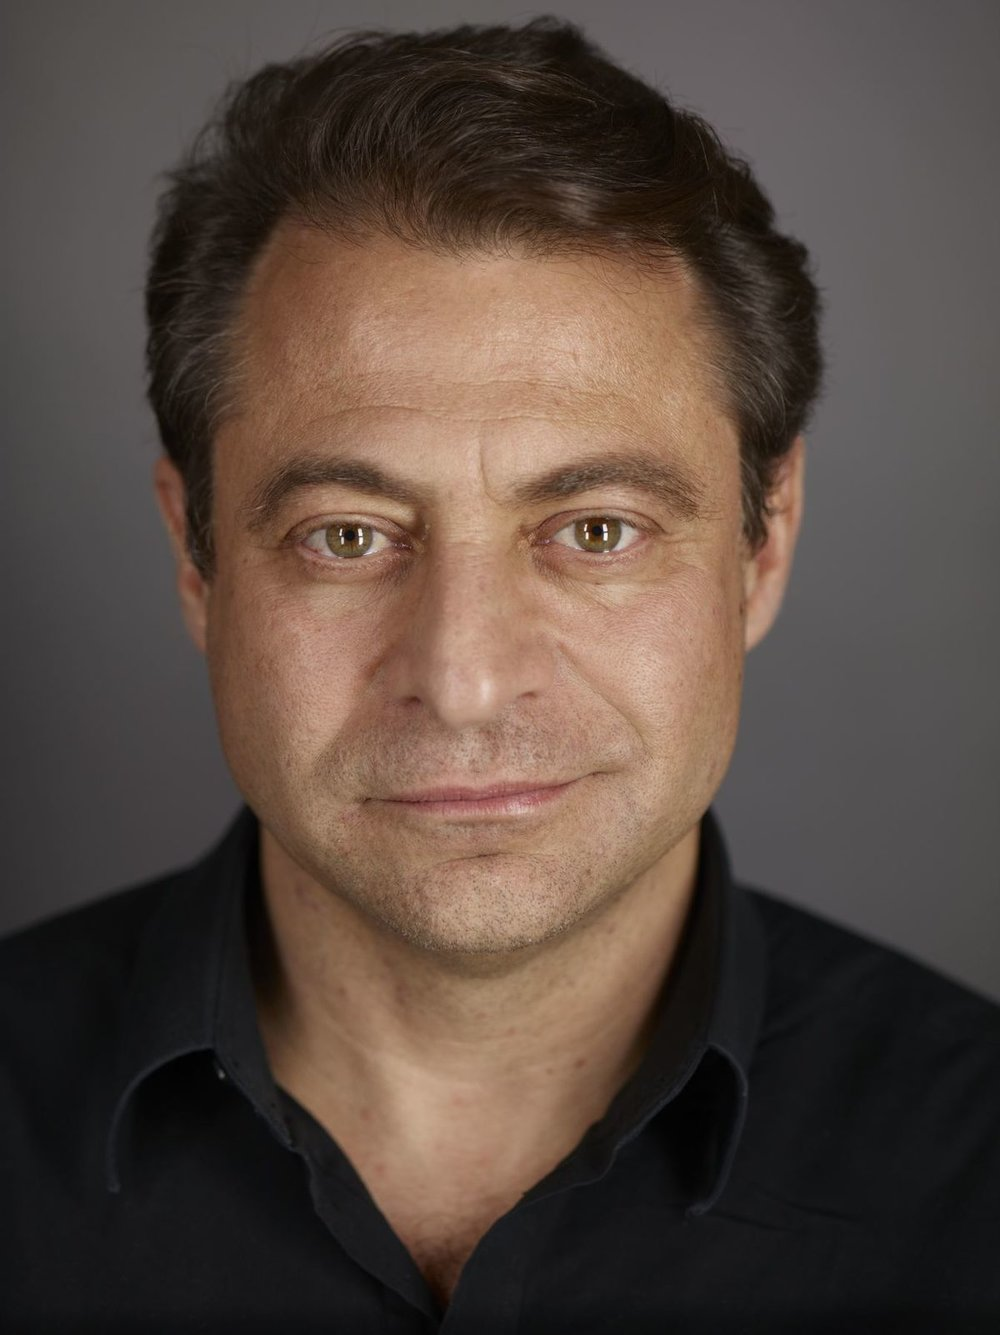 Peter-Diamandis-Headshot.jpg